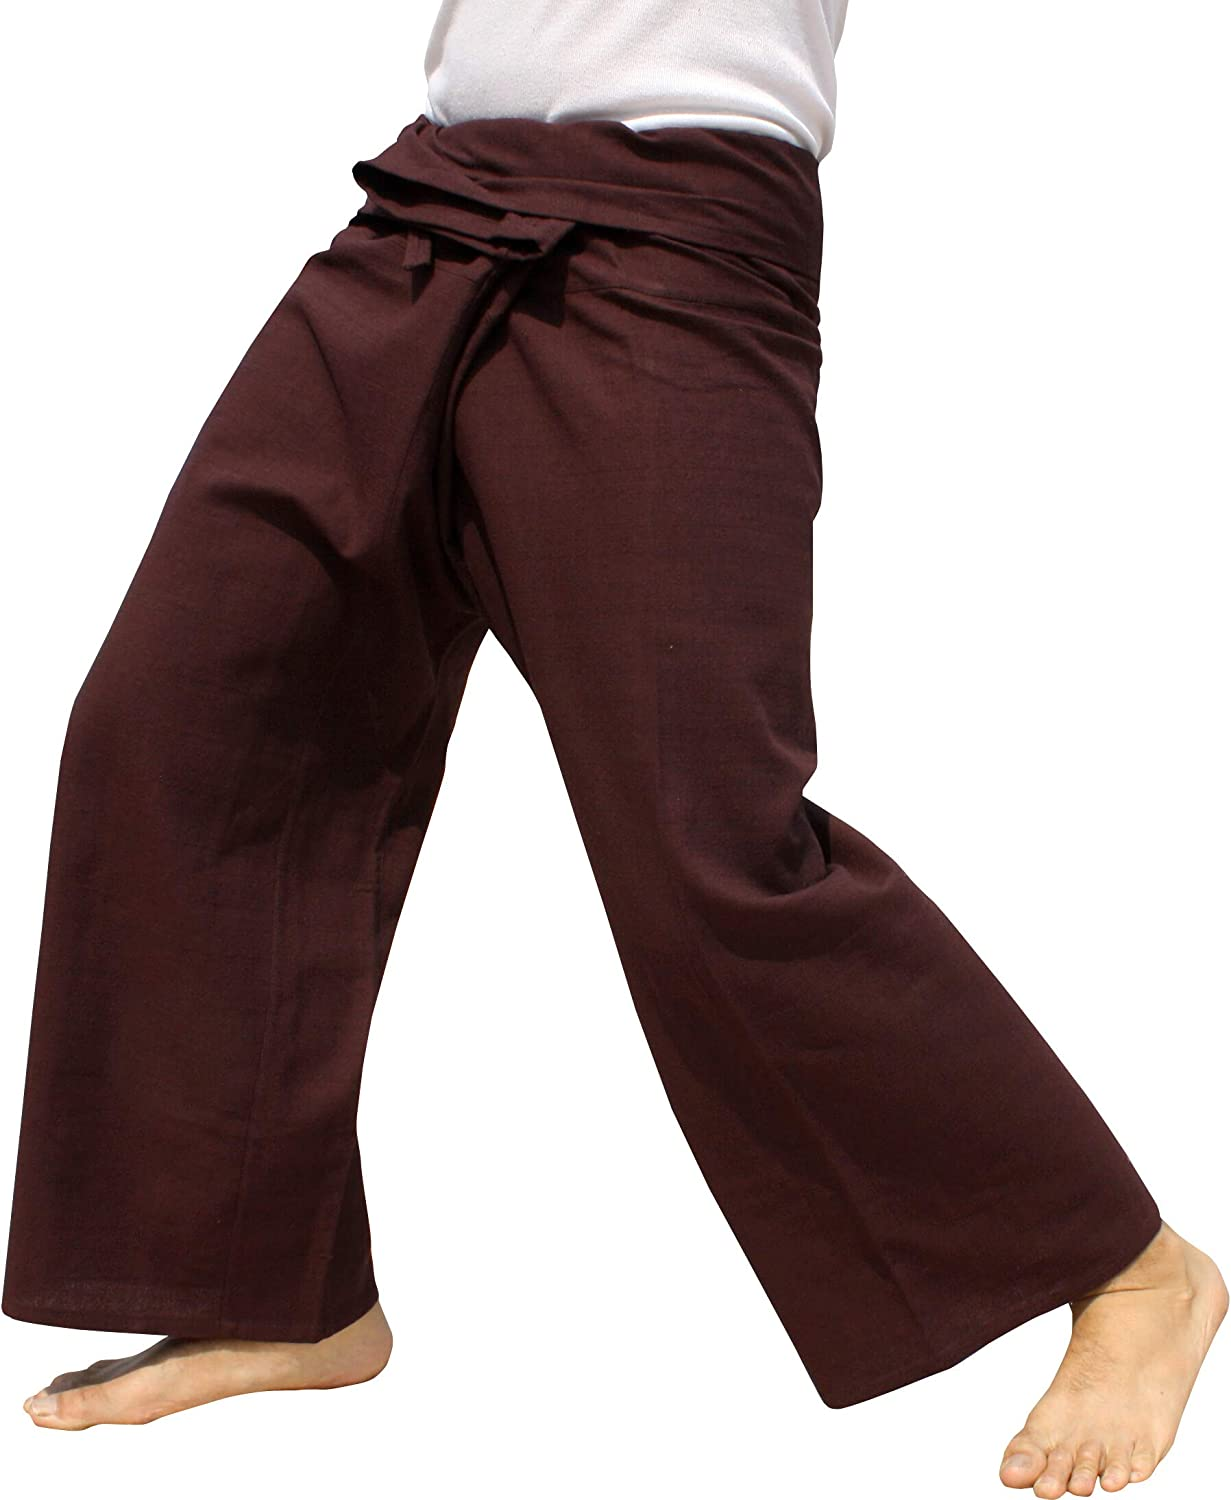 RaanPahMuang Brand Yeaphai Cotton Thailand Fisherman Plain Wrap Pants